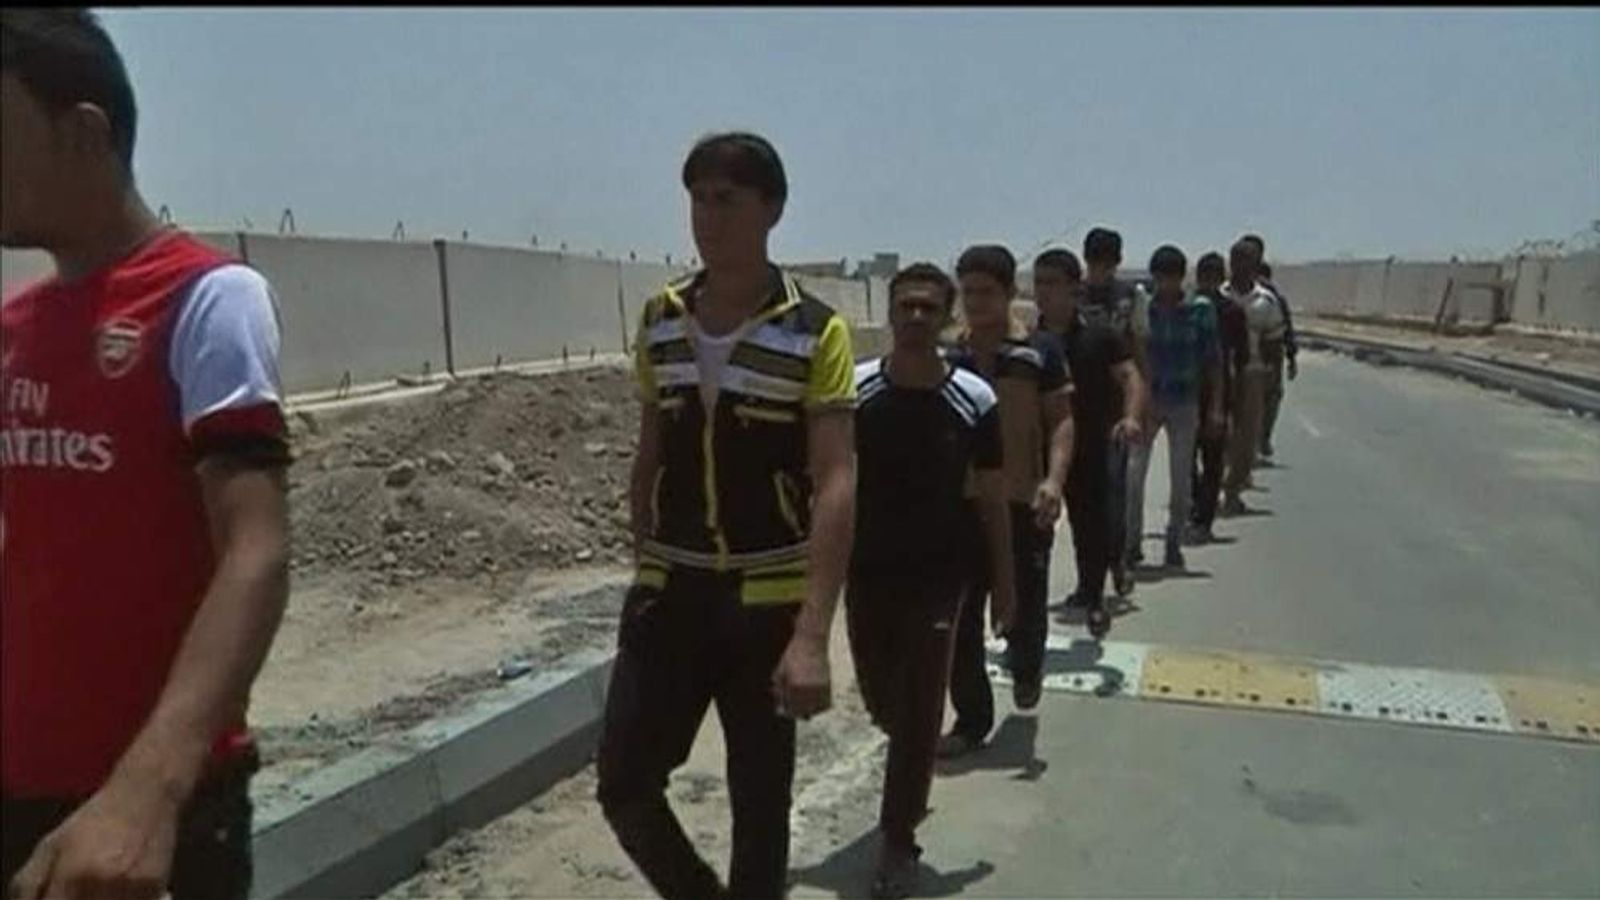 120614 IRAQ basra queue phone screengrab